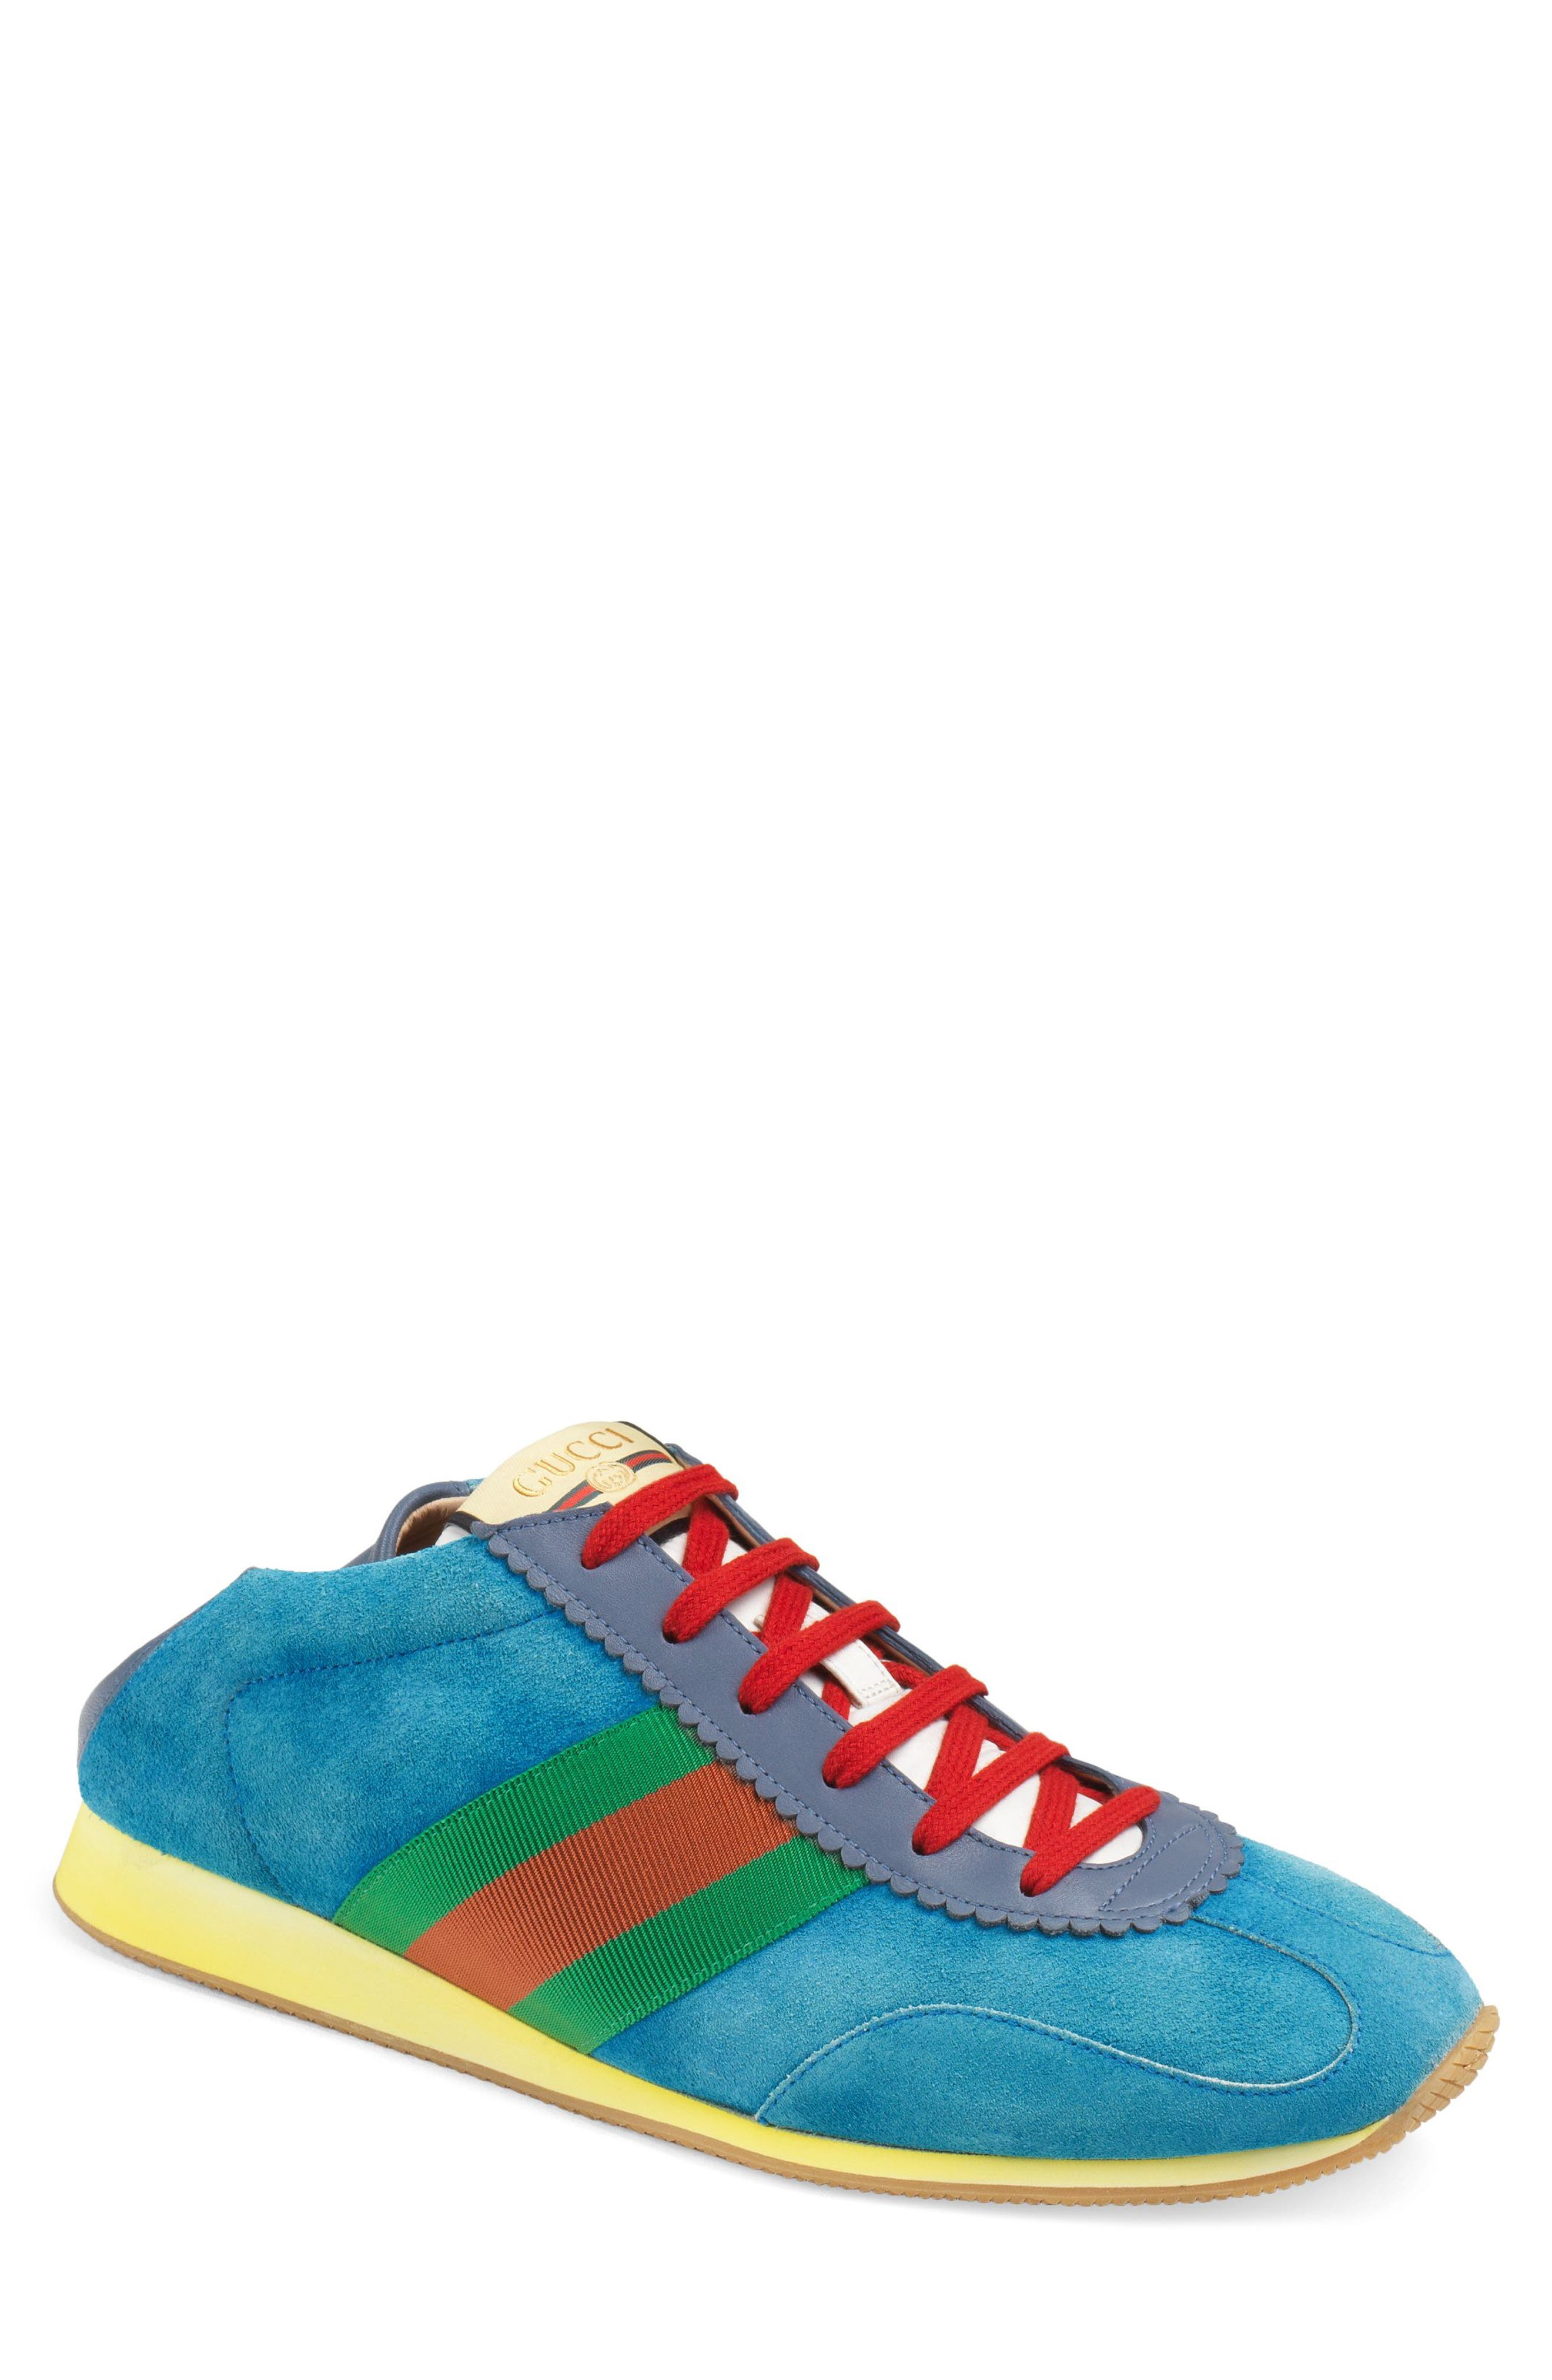 Rocket Collapsible Sneaker,                             Main thumbnail 1, color,                             BLUE/ INK